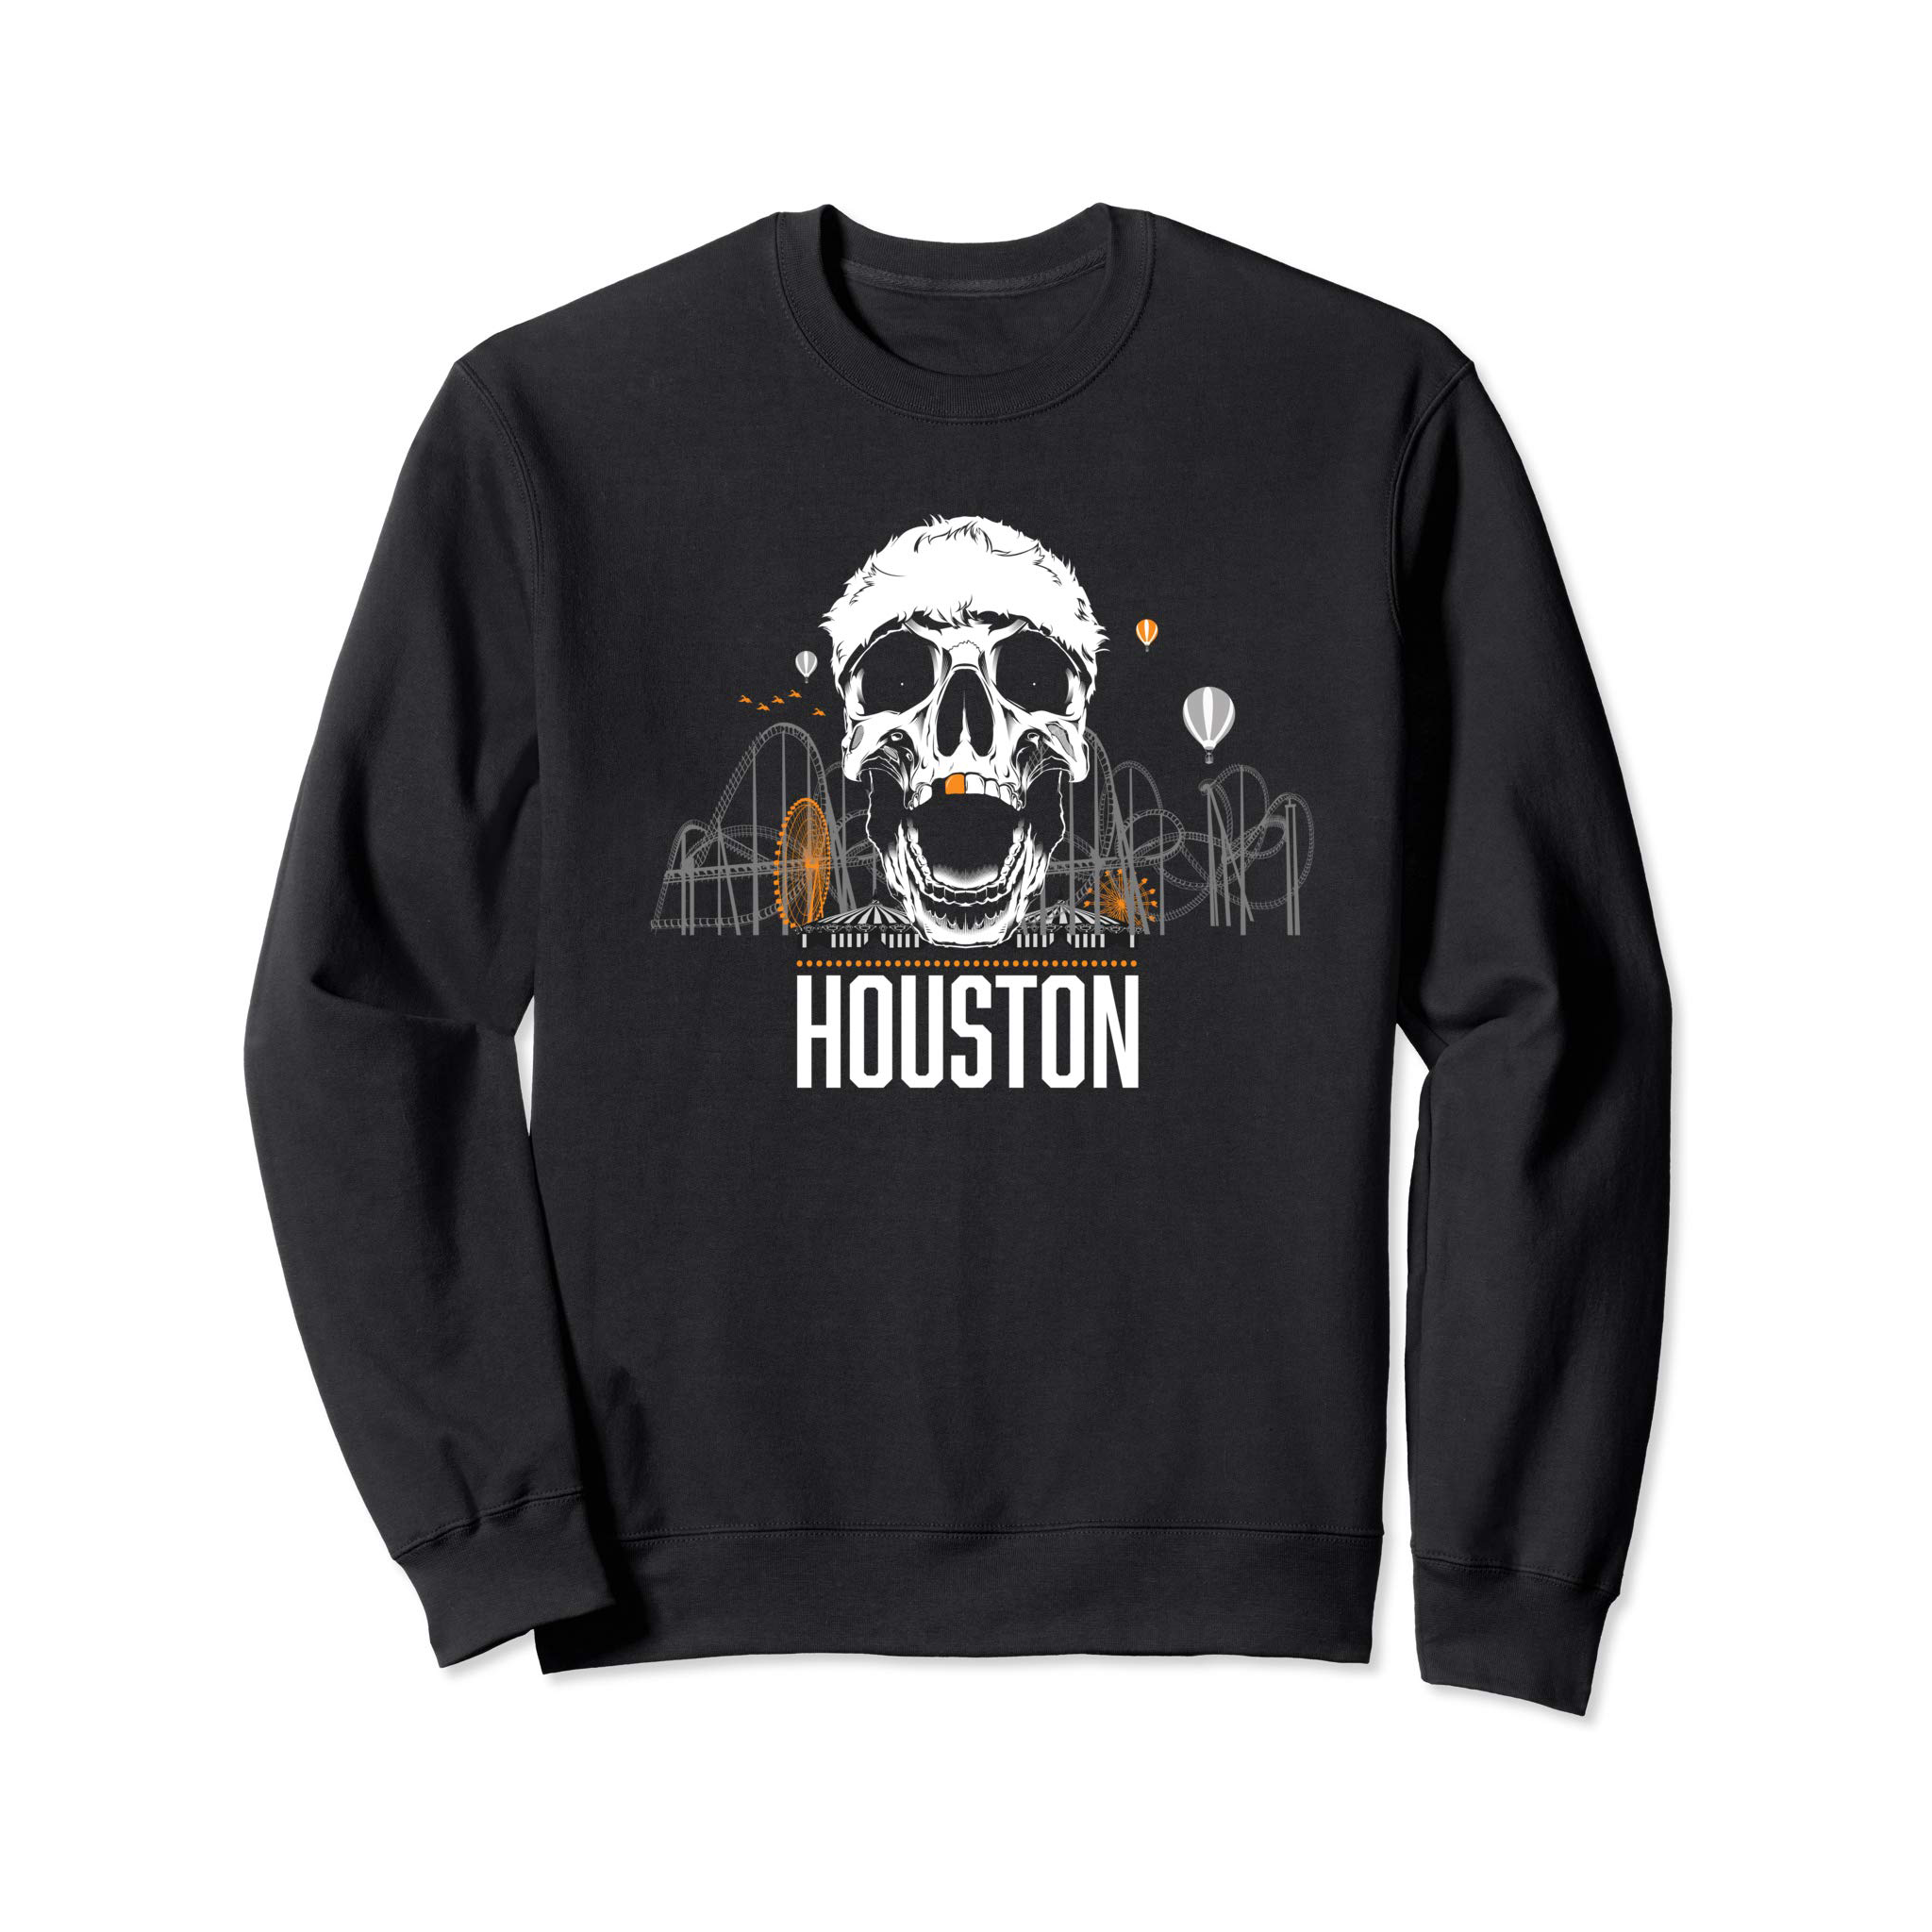 Genuine By Anthony Gold Tooth Houston Skully Sweatshirt - Genuine By Anthony